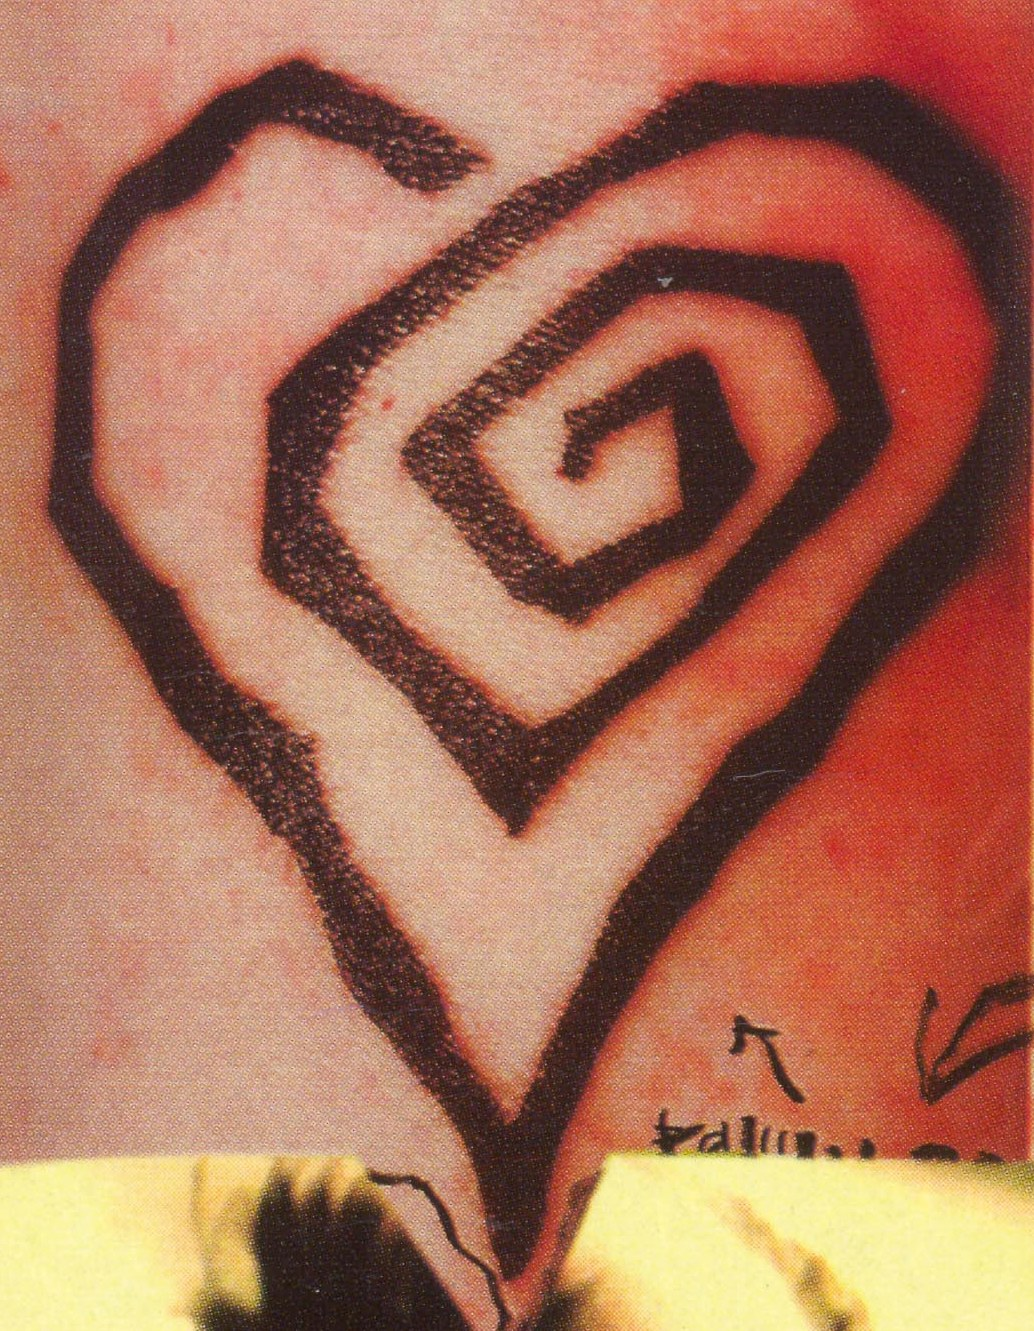 Spiral Heart tattoo